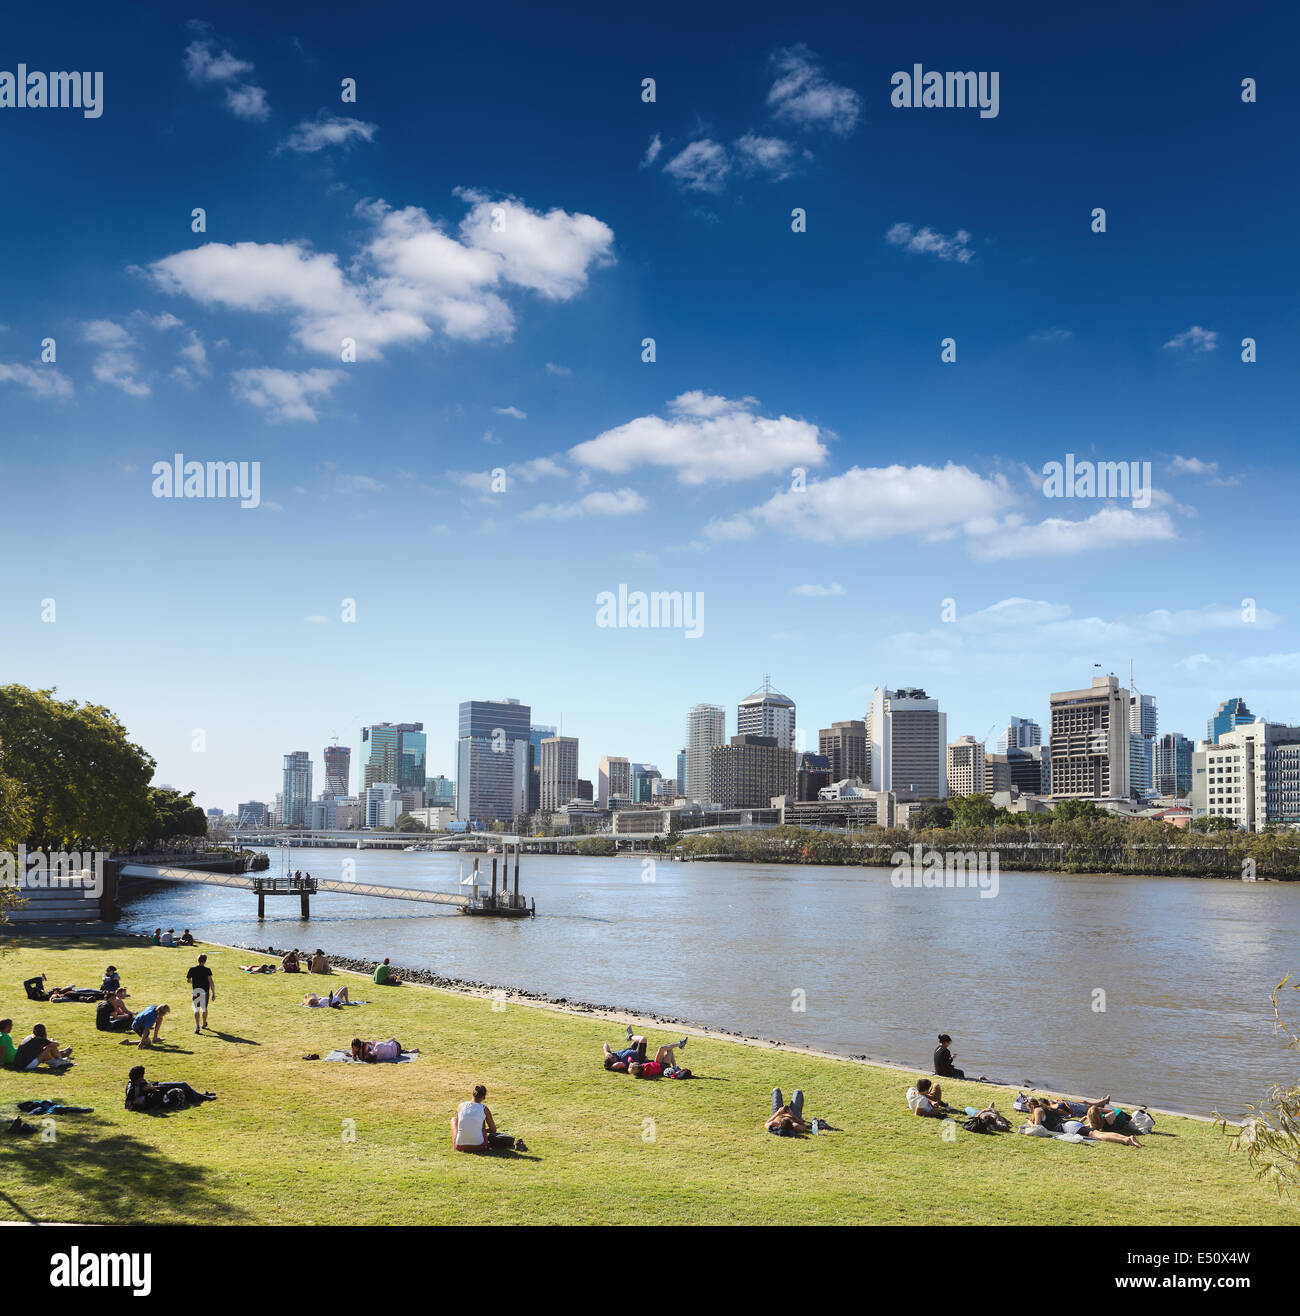 brisbane skyline from the park - Stock Image